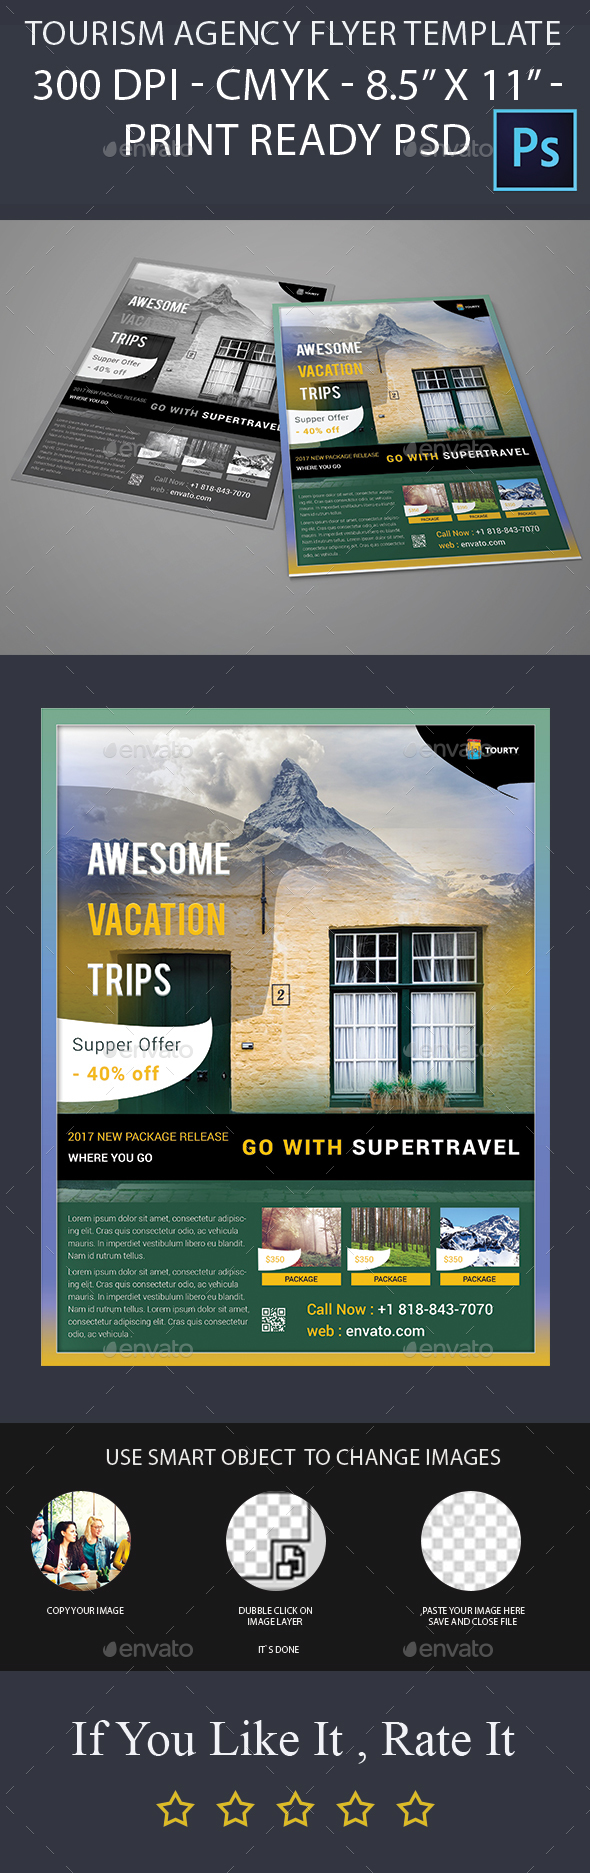 Tourism Agency Flyer Template - Holidays Events